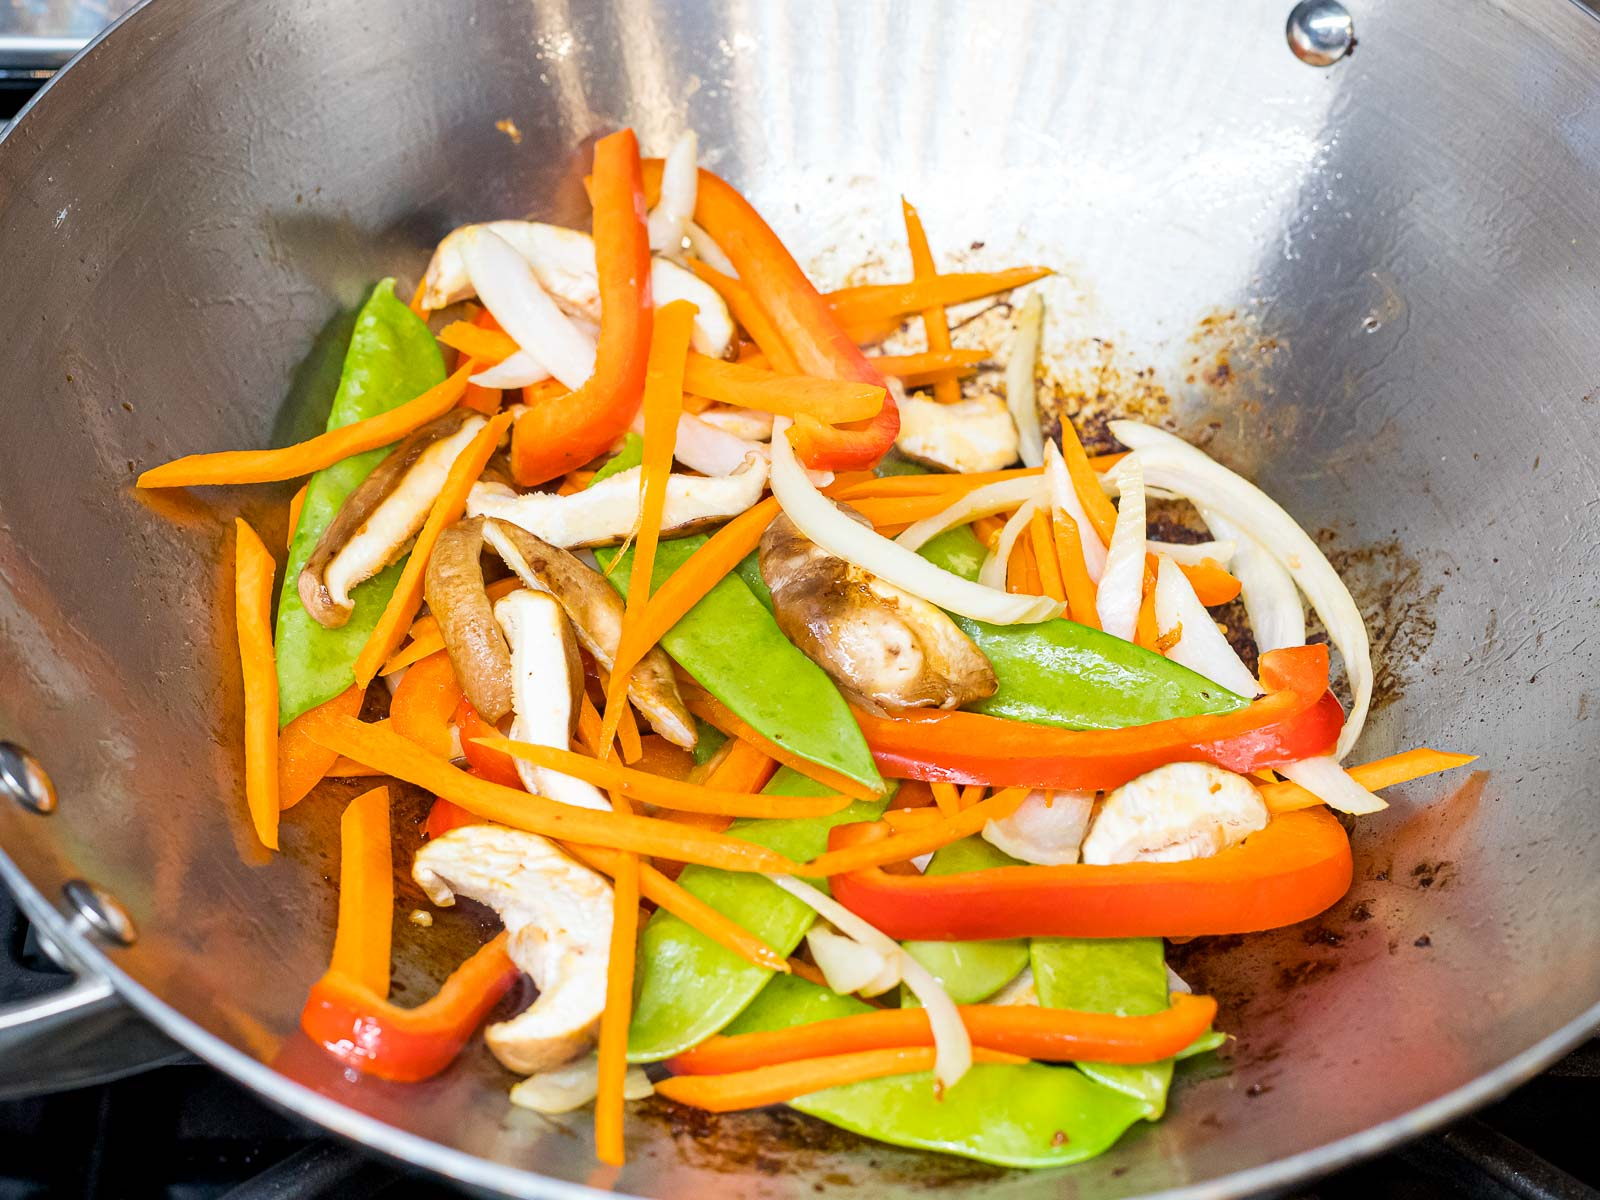 snow peas, carrots, red bell peppers, and shiitake mushrooms in a wok